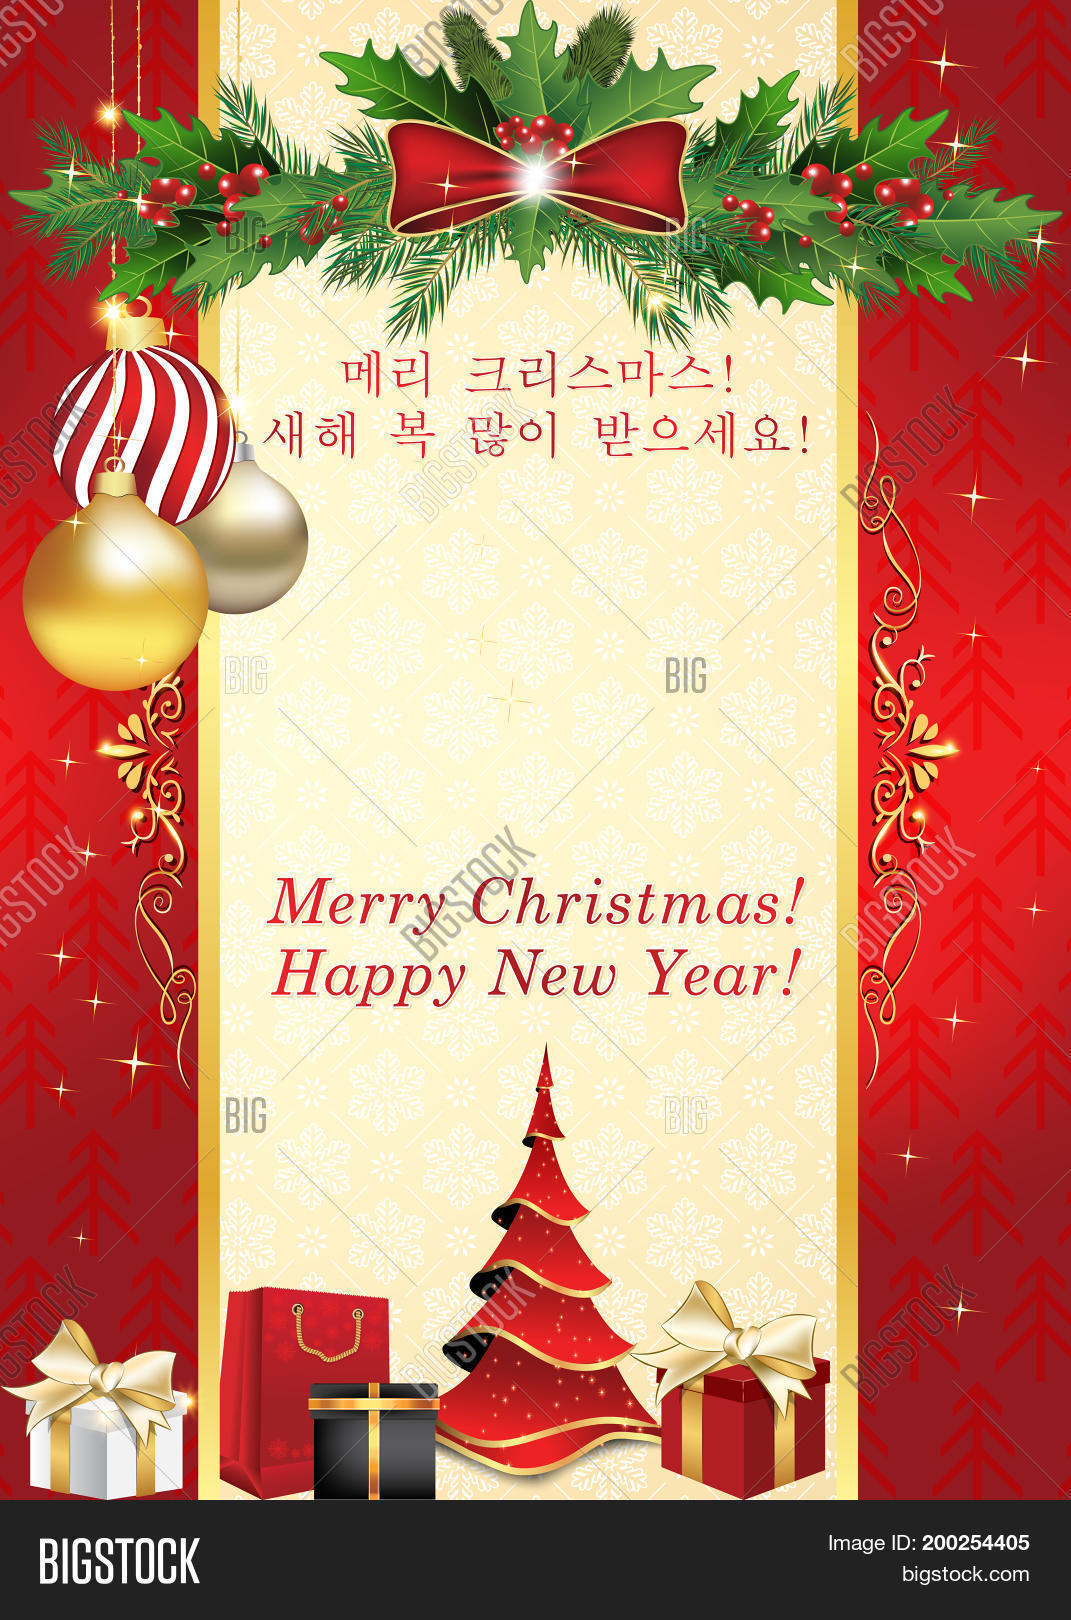 photo relating to Merry Christmas in Different Languages Printable identified as Greeting Card Graphic Picture (Cost-free Demo) Bigstock